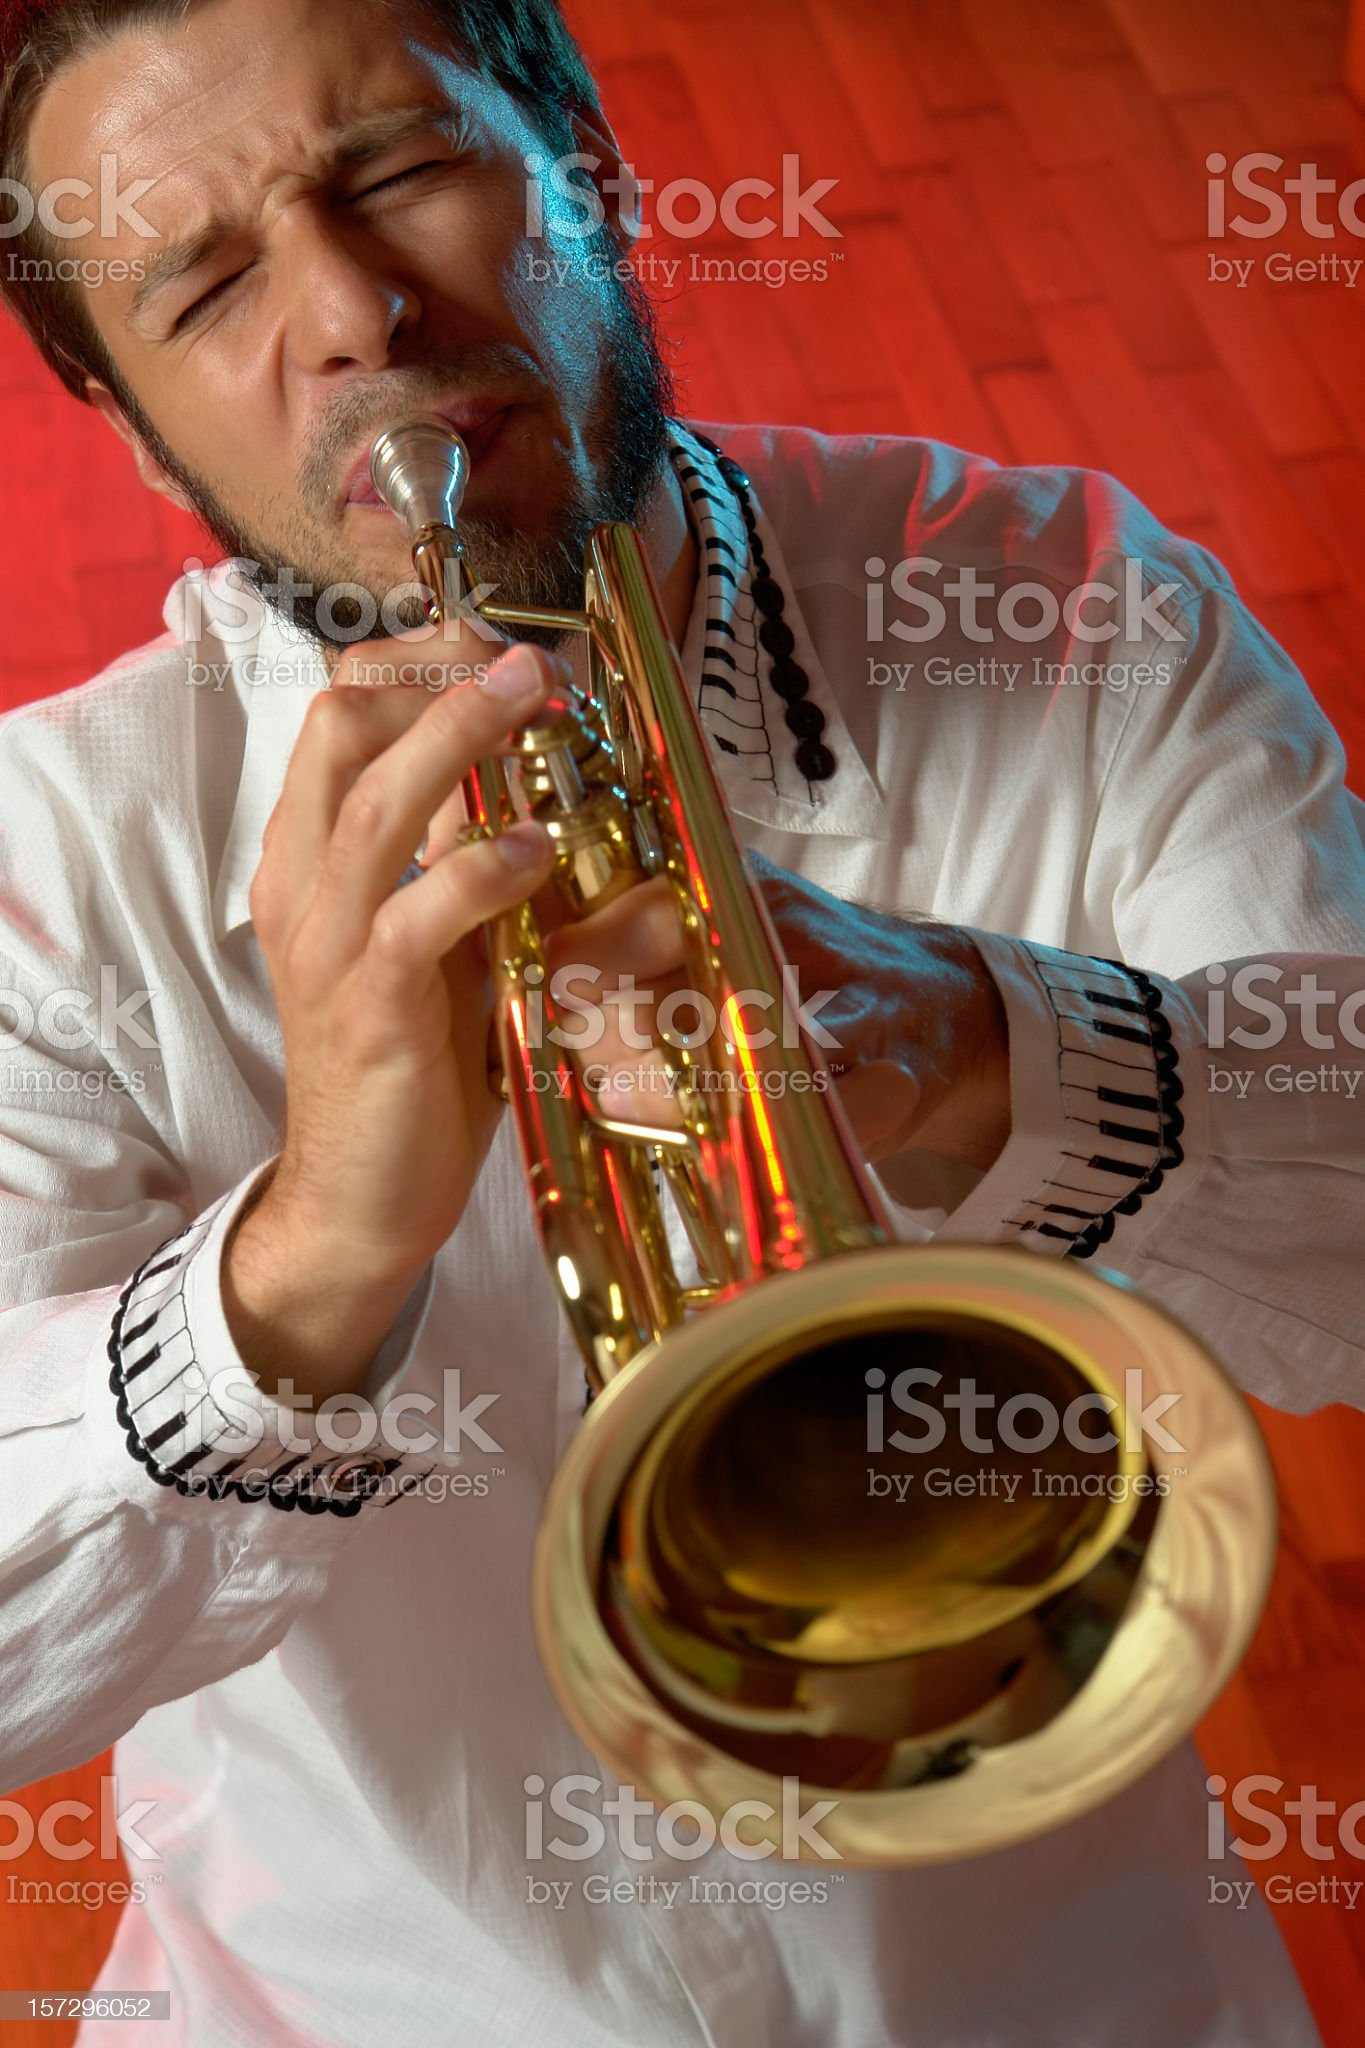 Trumpeter, musician with golden trumpet is playing classical jazz music royalty-free stock photo